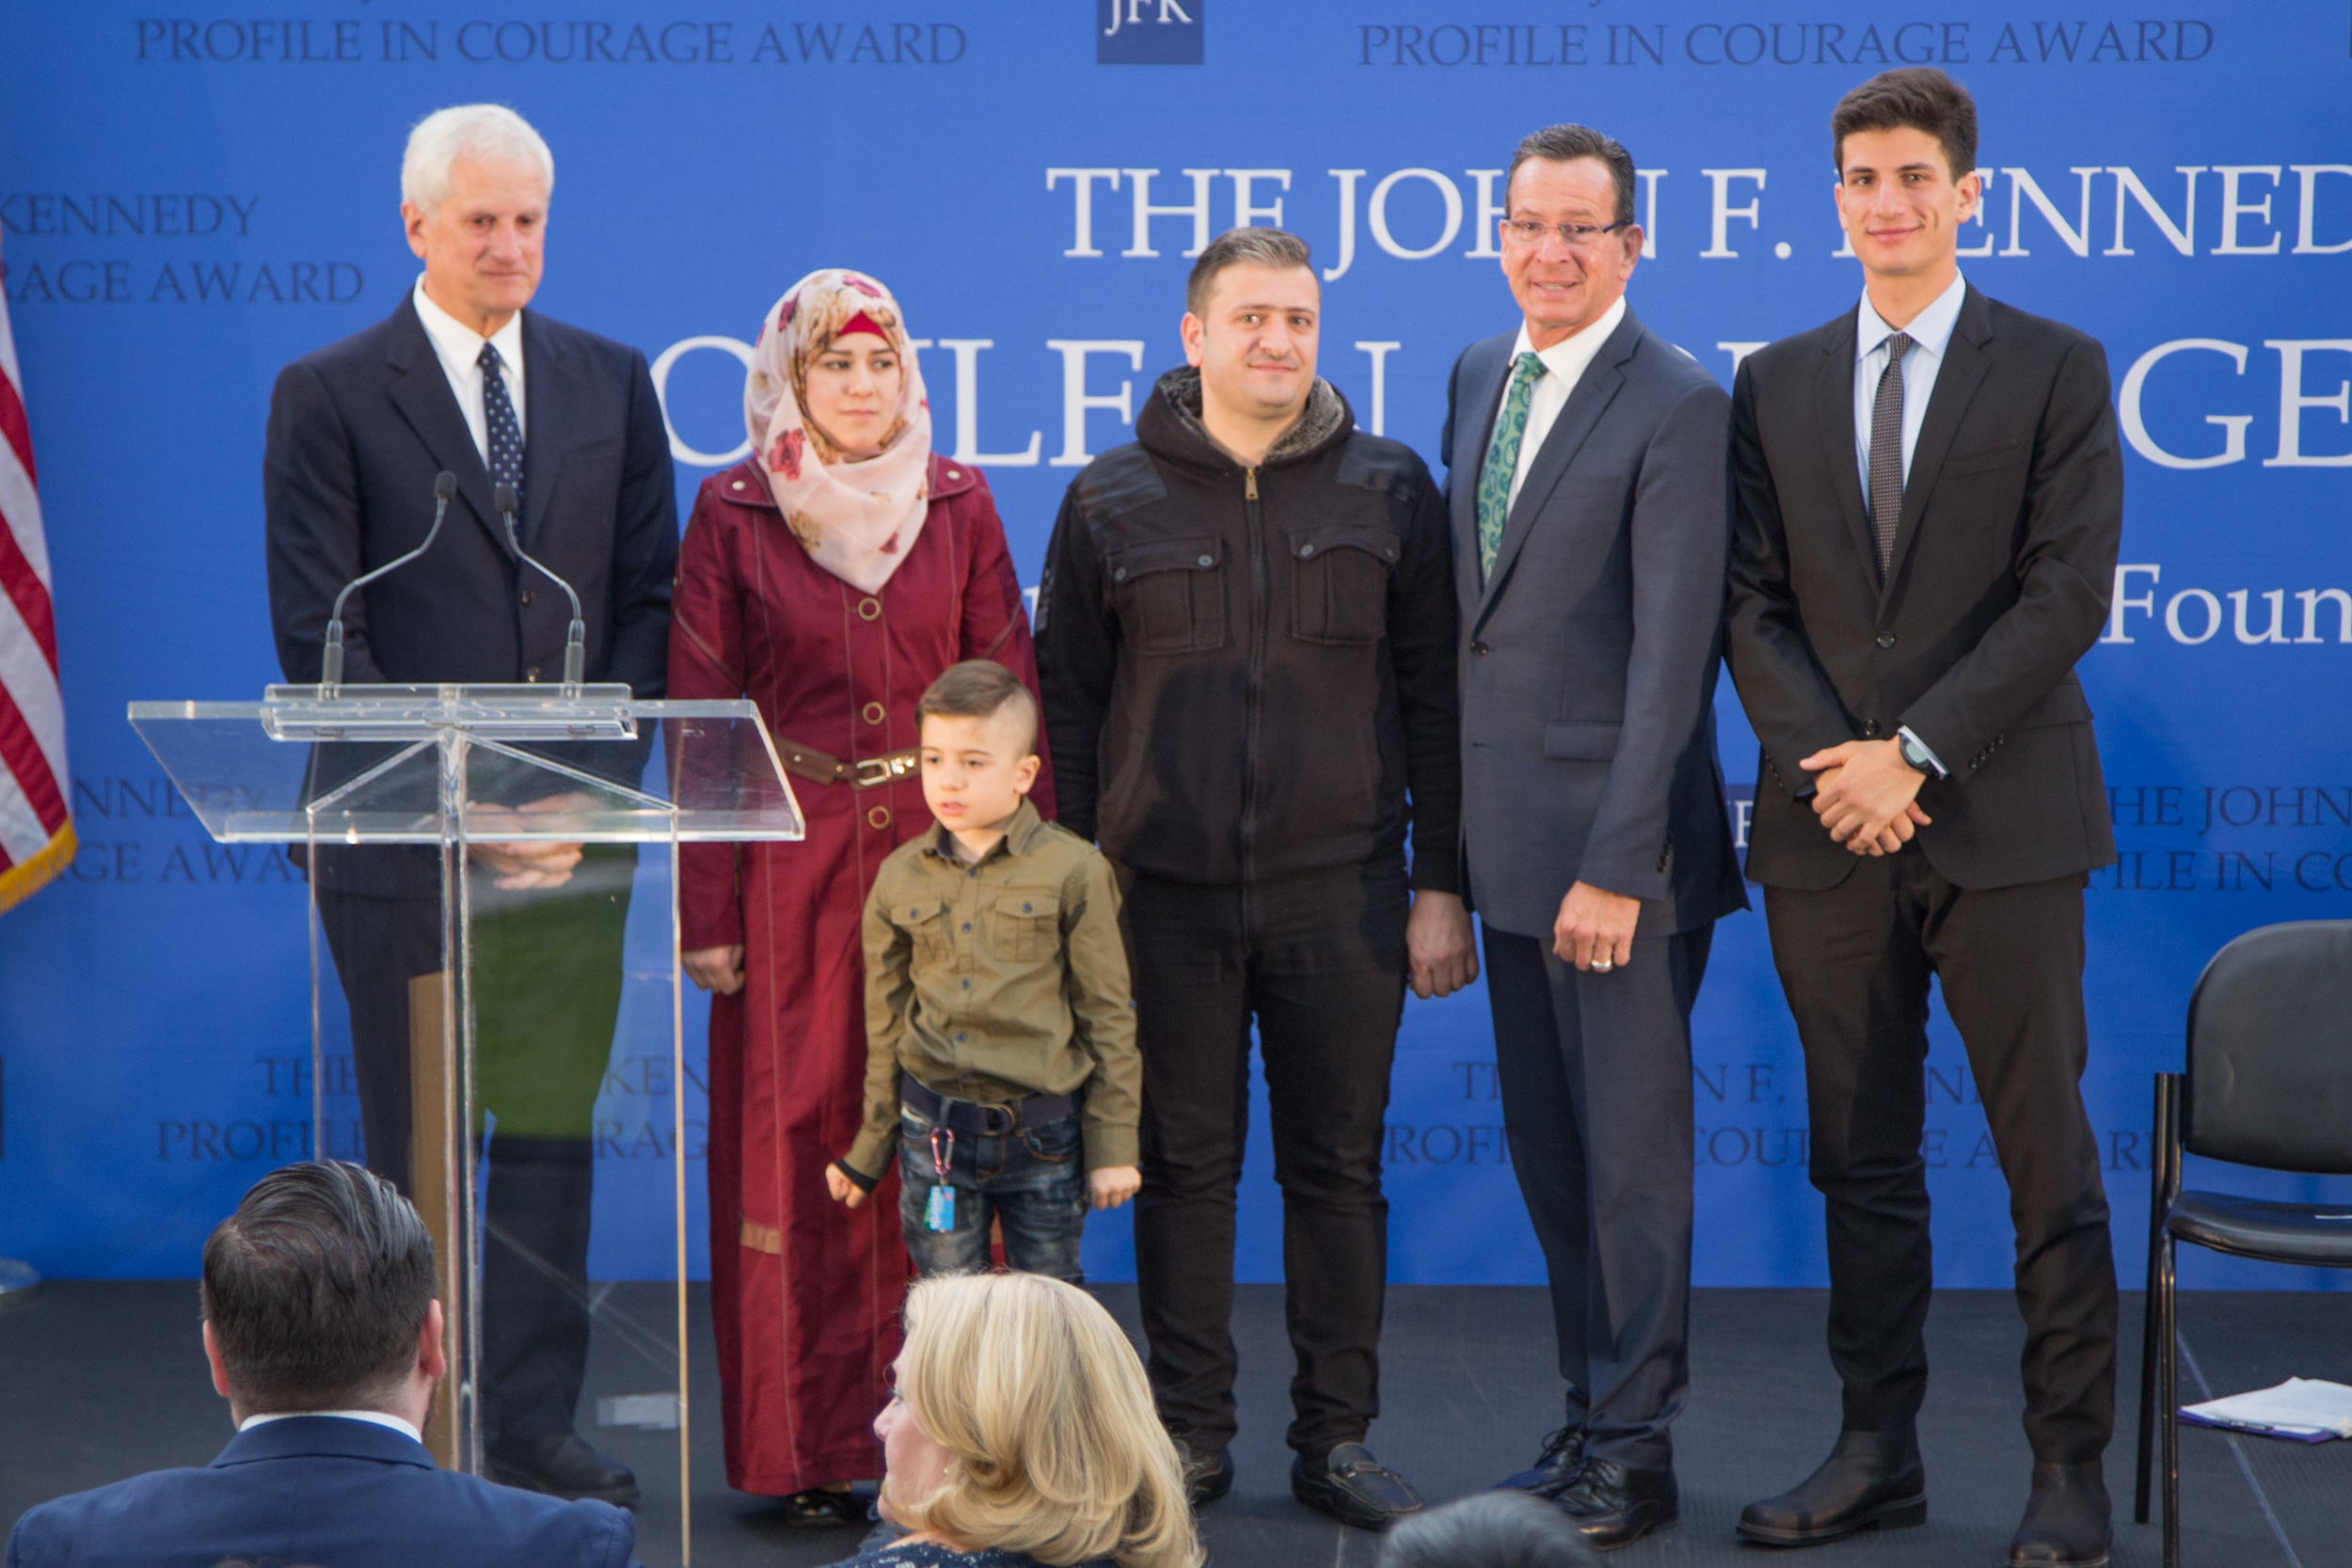 This Syrian couple and their 5 year old son lauded Gov. Dannel Malloy (second from right) for personally welcoming them to Indiana last November. The family is withholding their last name due to concerns about the safety of relatives back in Syria.